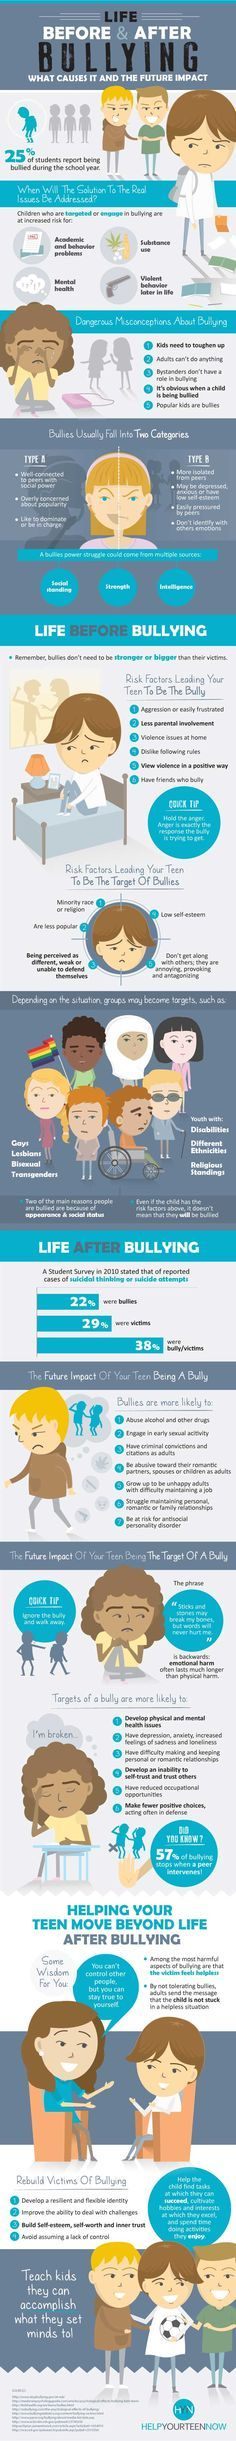 life before and after bullying infographic